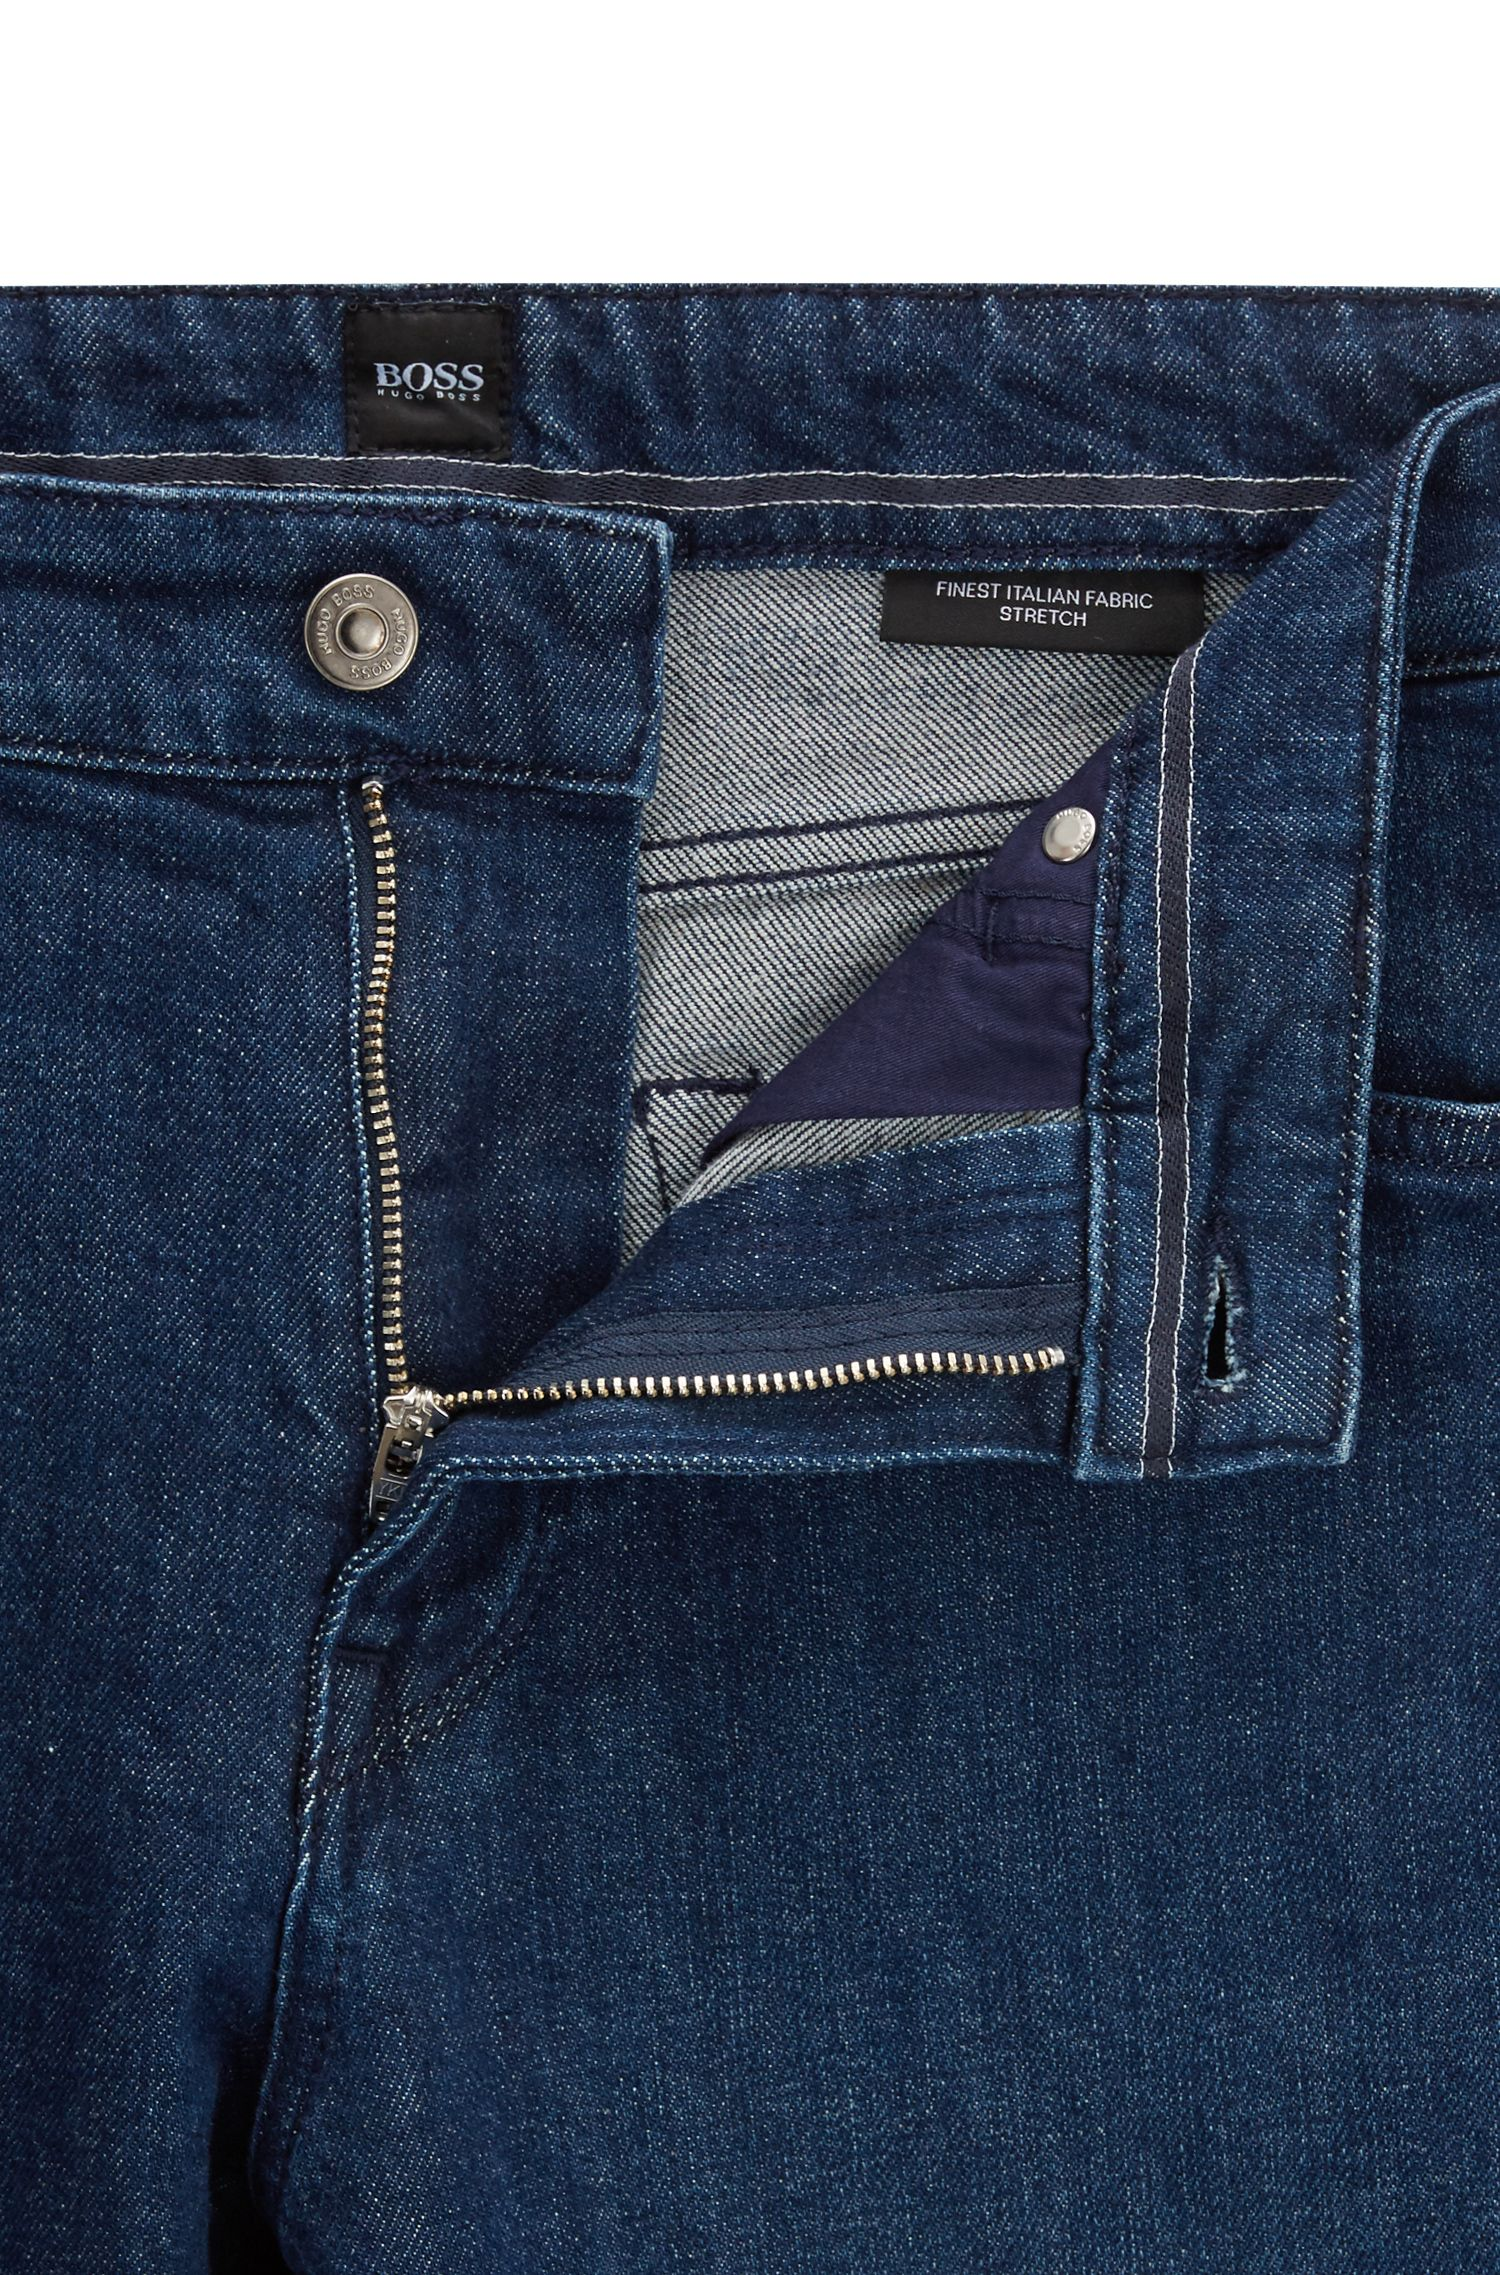 Regular-fit jeans in dark-blue Italian stretch denim